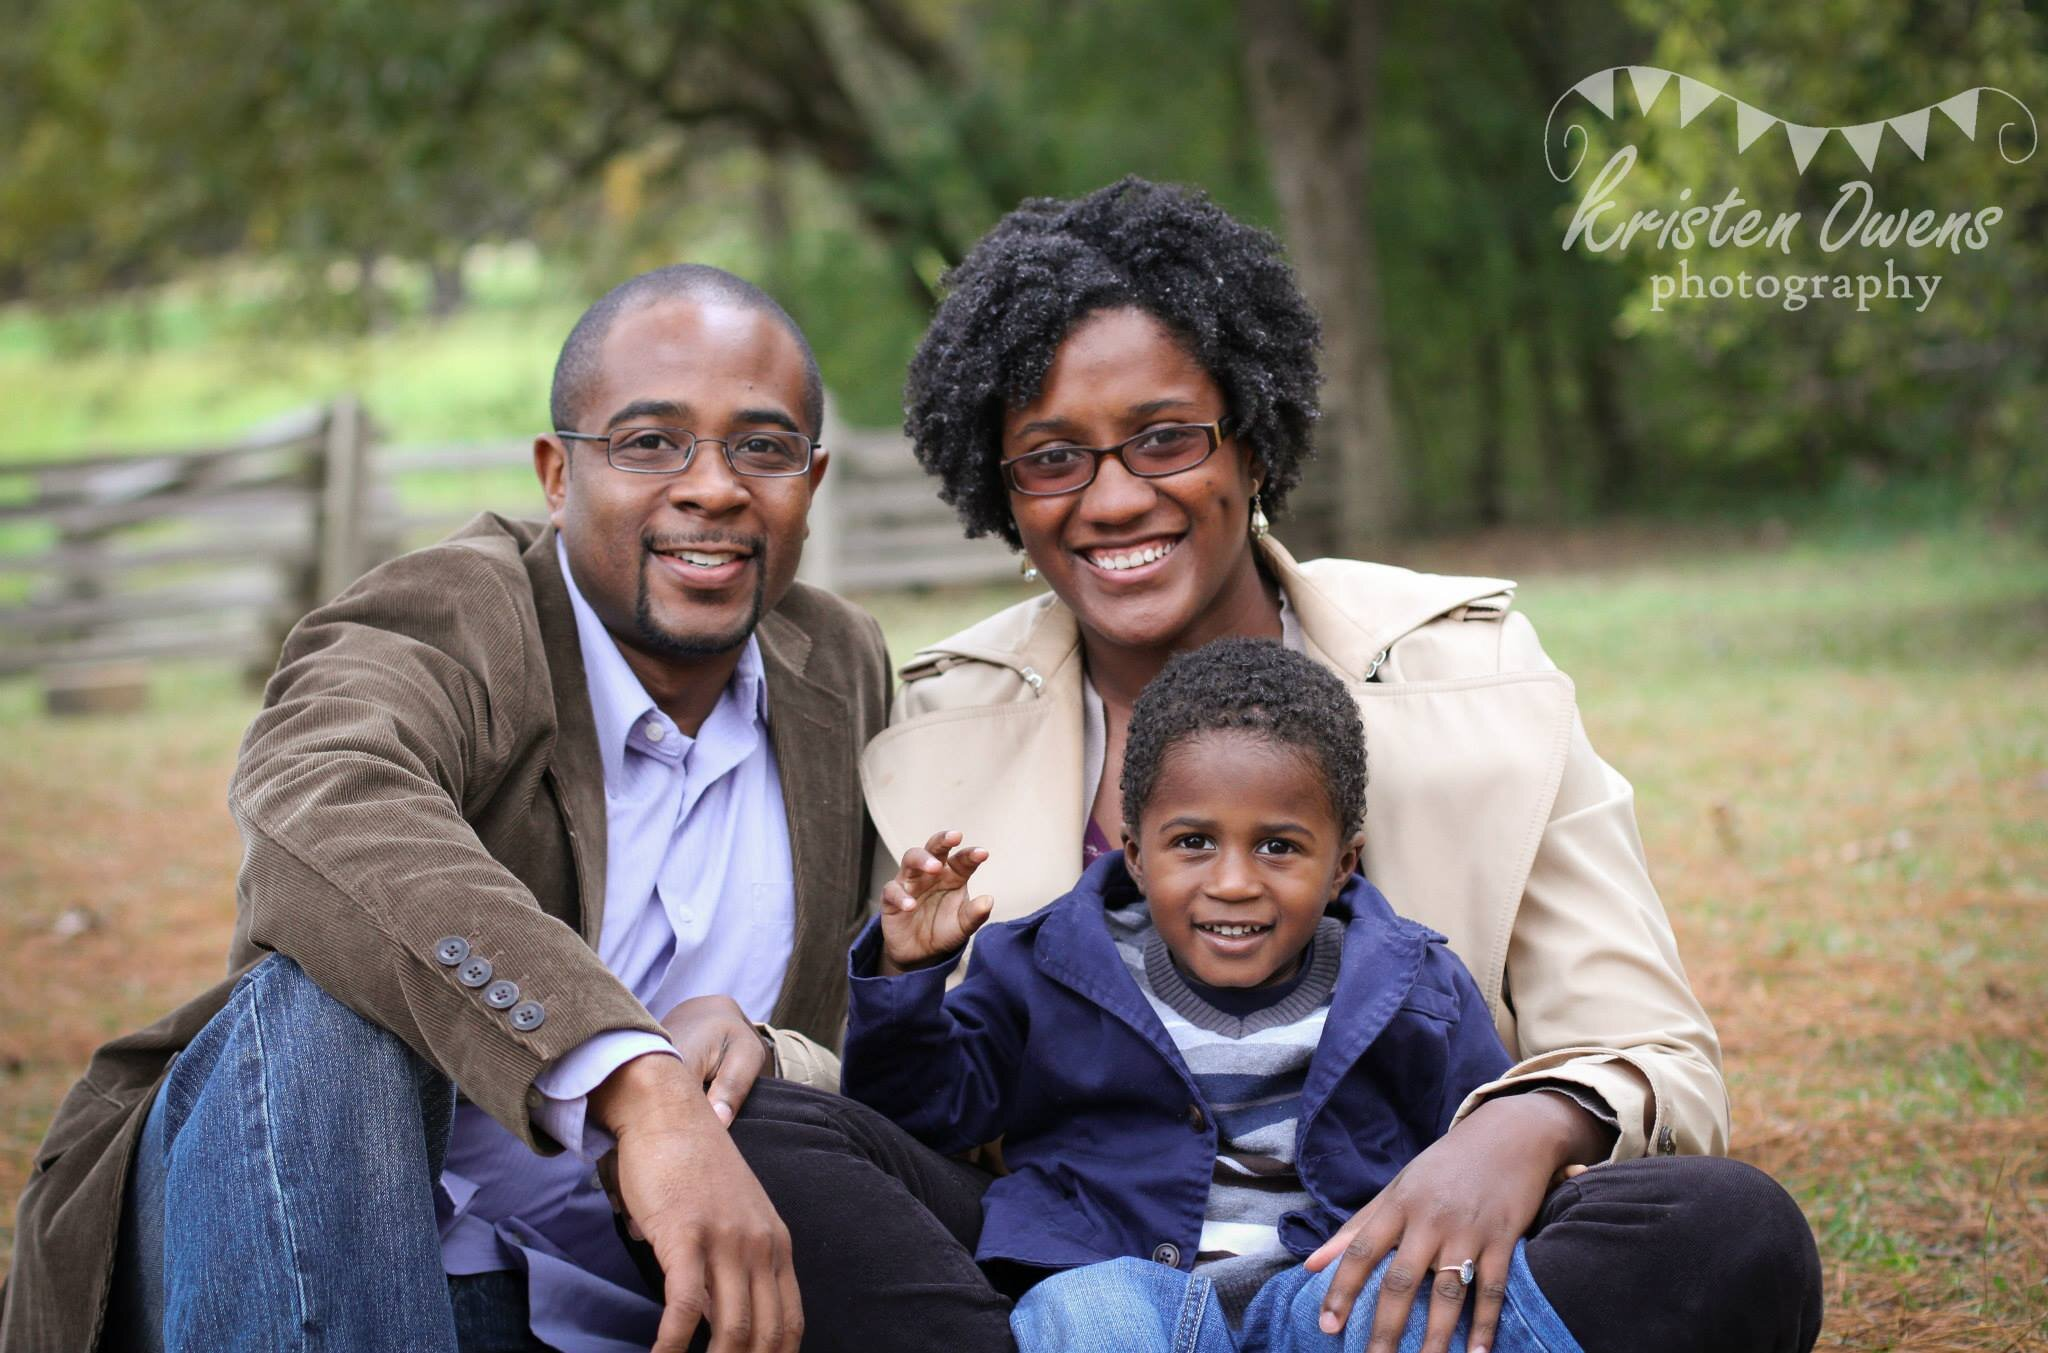 Janeé with her husband, Jemar, and son, Jack (Photo by Kristen Owens)